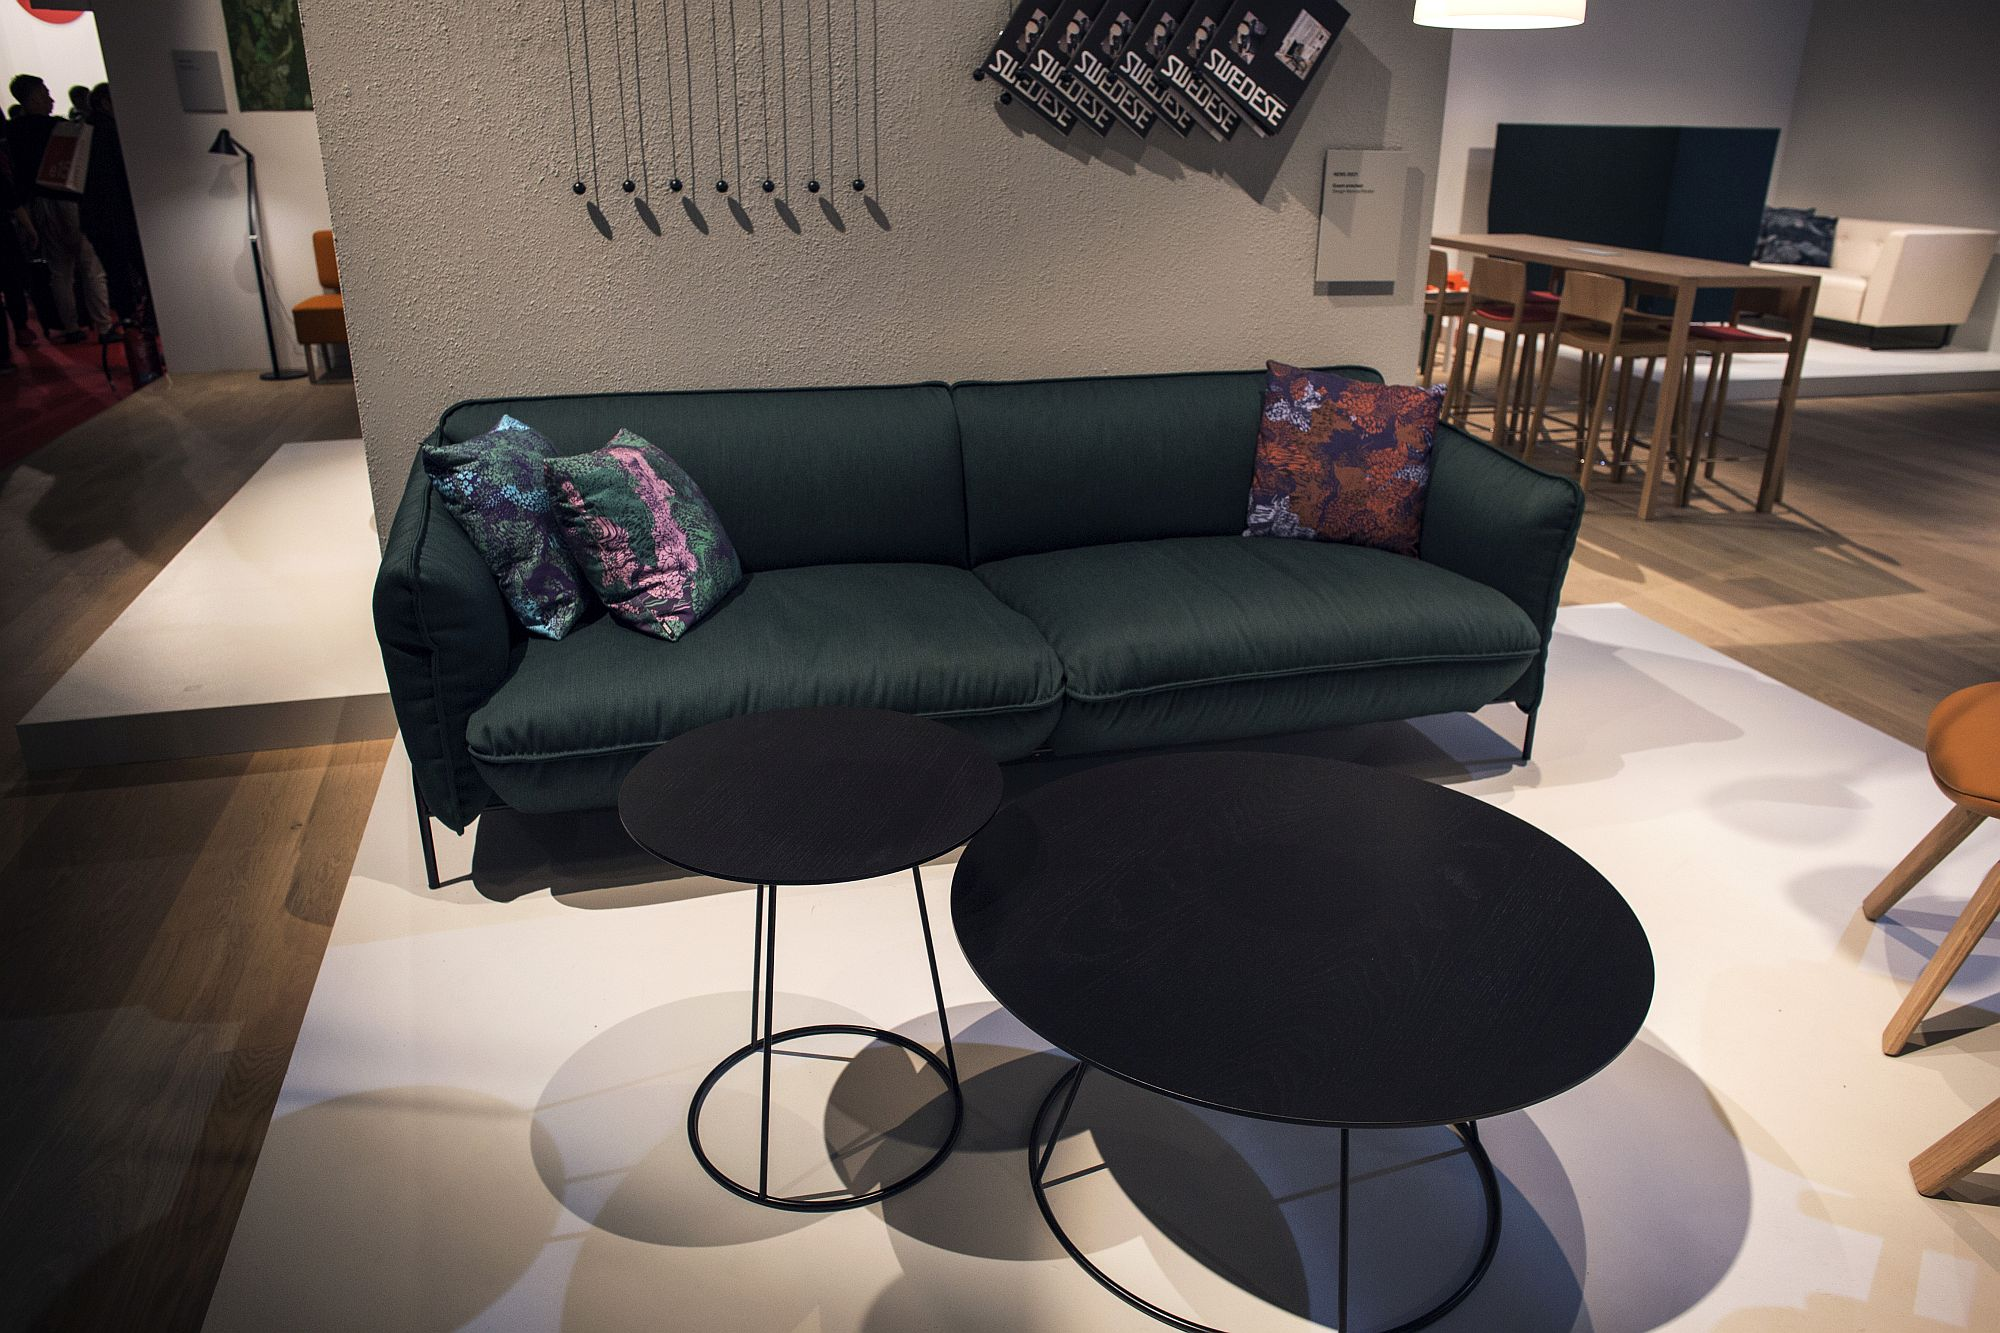 Combine smaller side tables and coffee tables to create a unique focal point in the living room